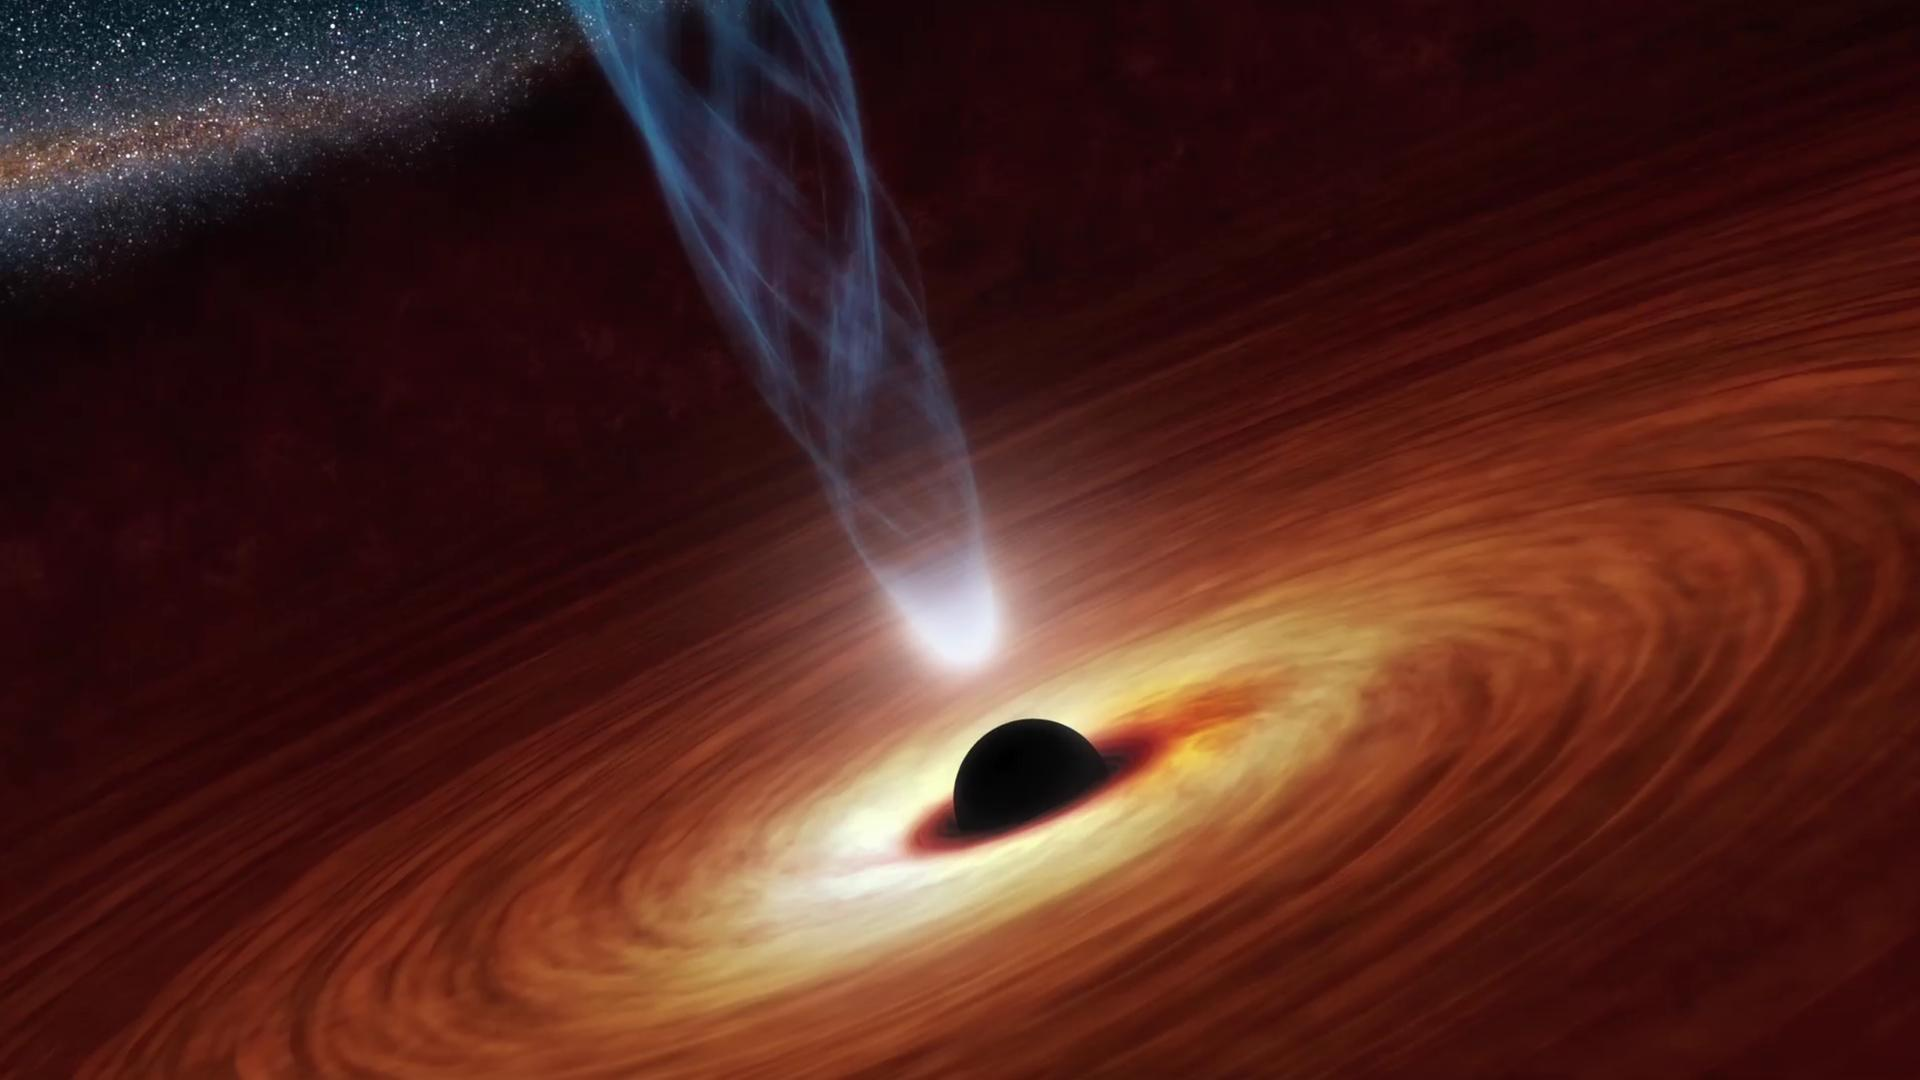 Stephen Hawking says there is a way out of a black hole (sort of)